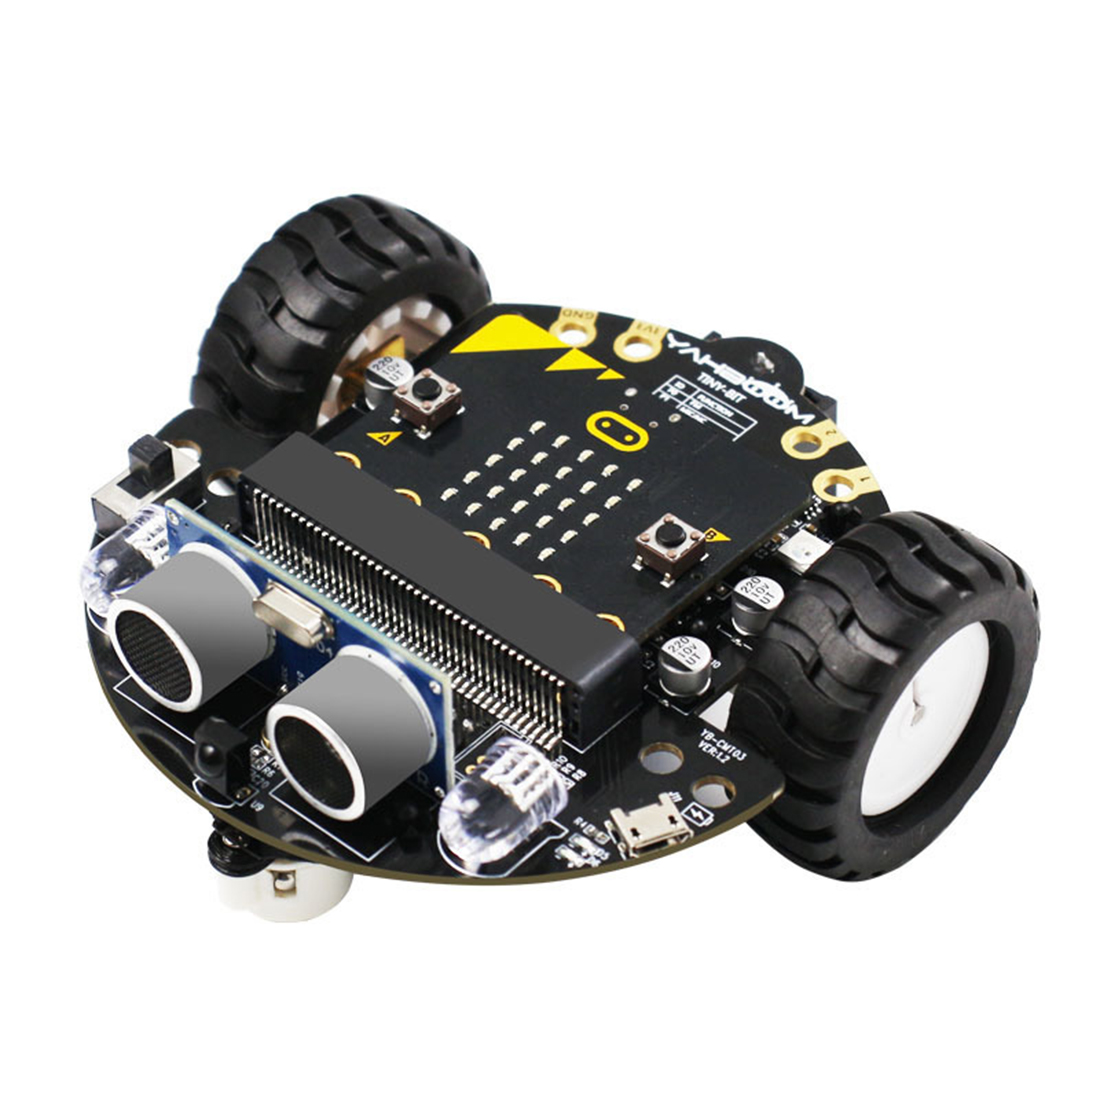 DIY Obstacle Avoidance Smart Programmable Smart Robot Car Educational Learning Kit with Mainboard for Micro:bit For Kids Over 5 2